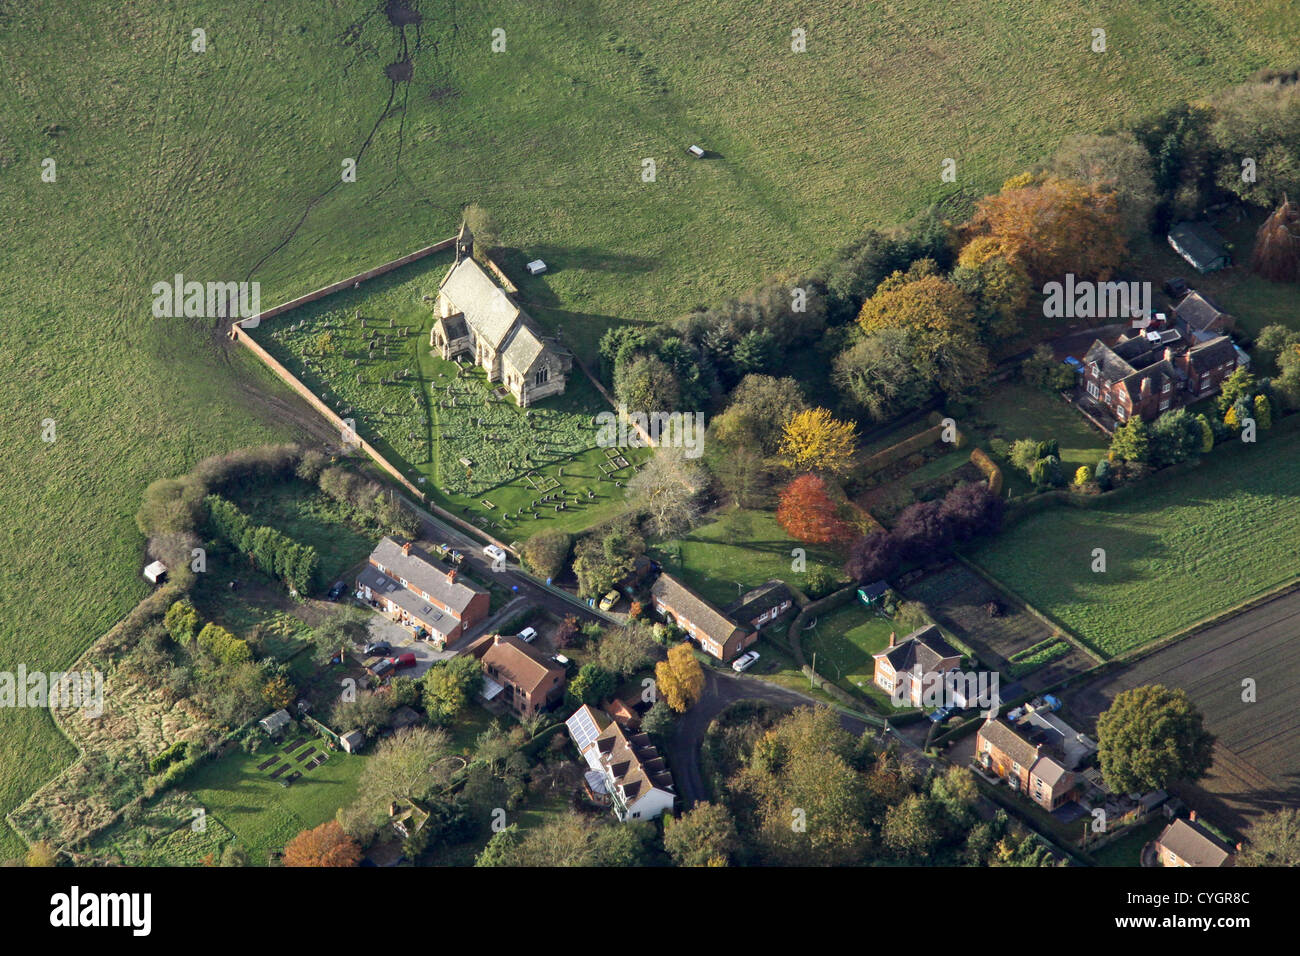 aerial view of Ellerton village and Ellerton Priory church, south of York - Stock Image